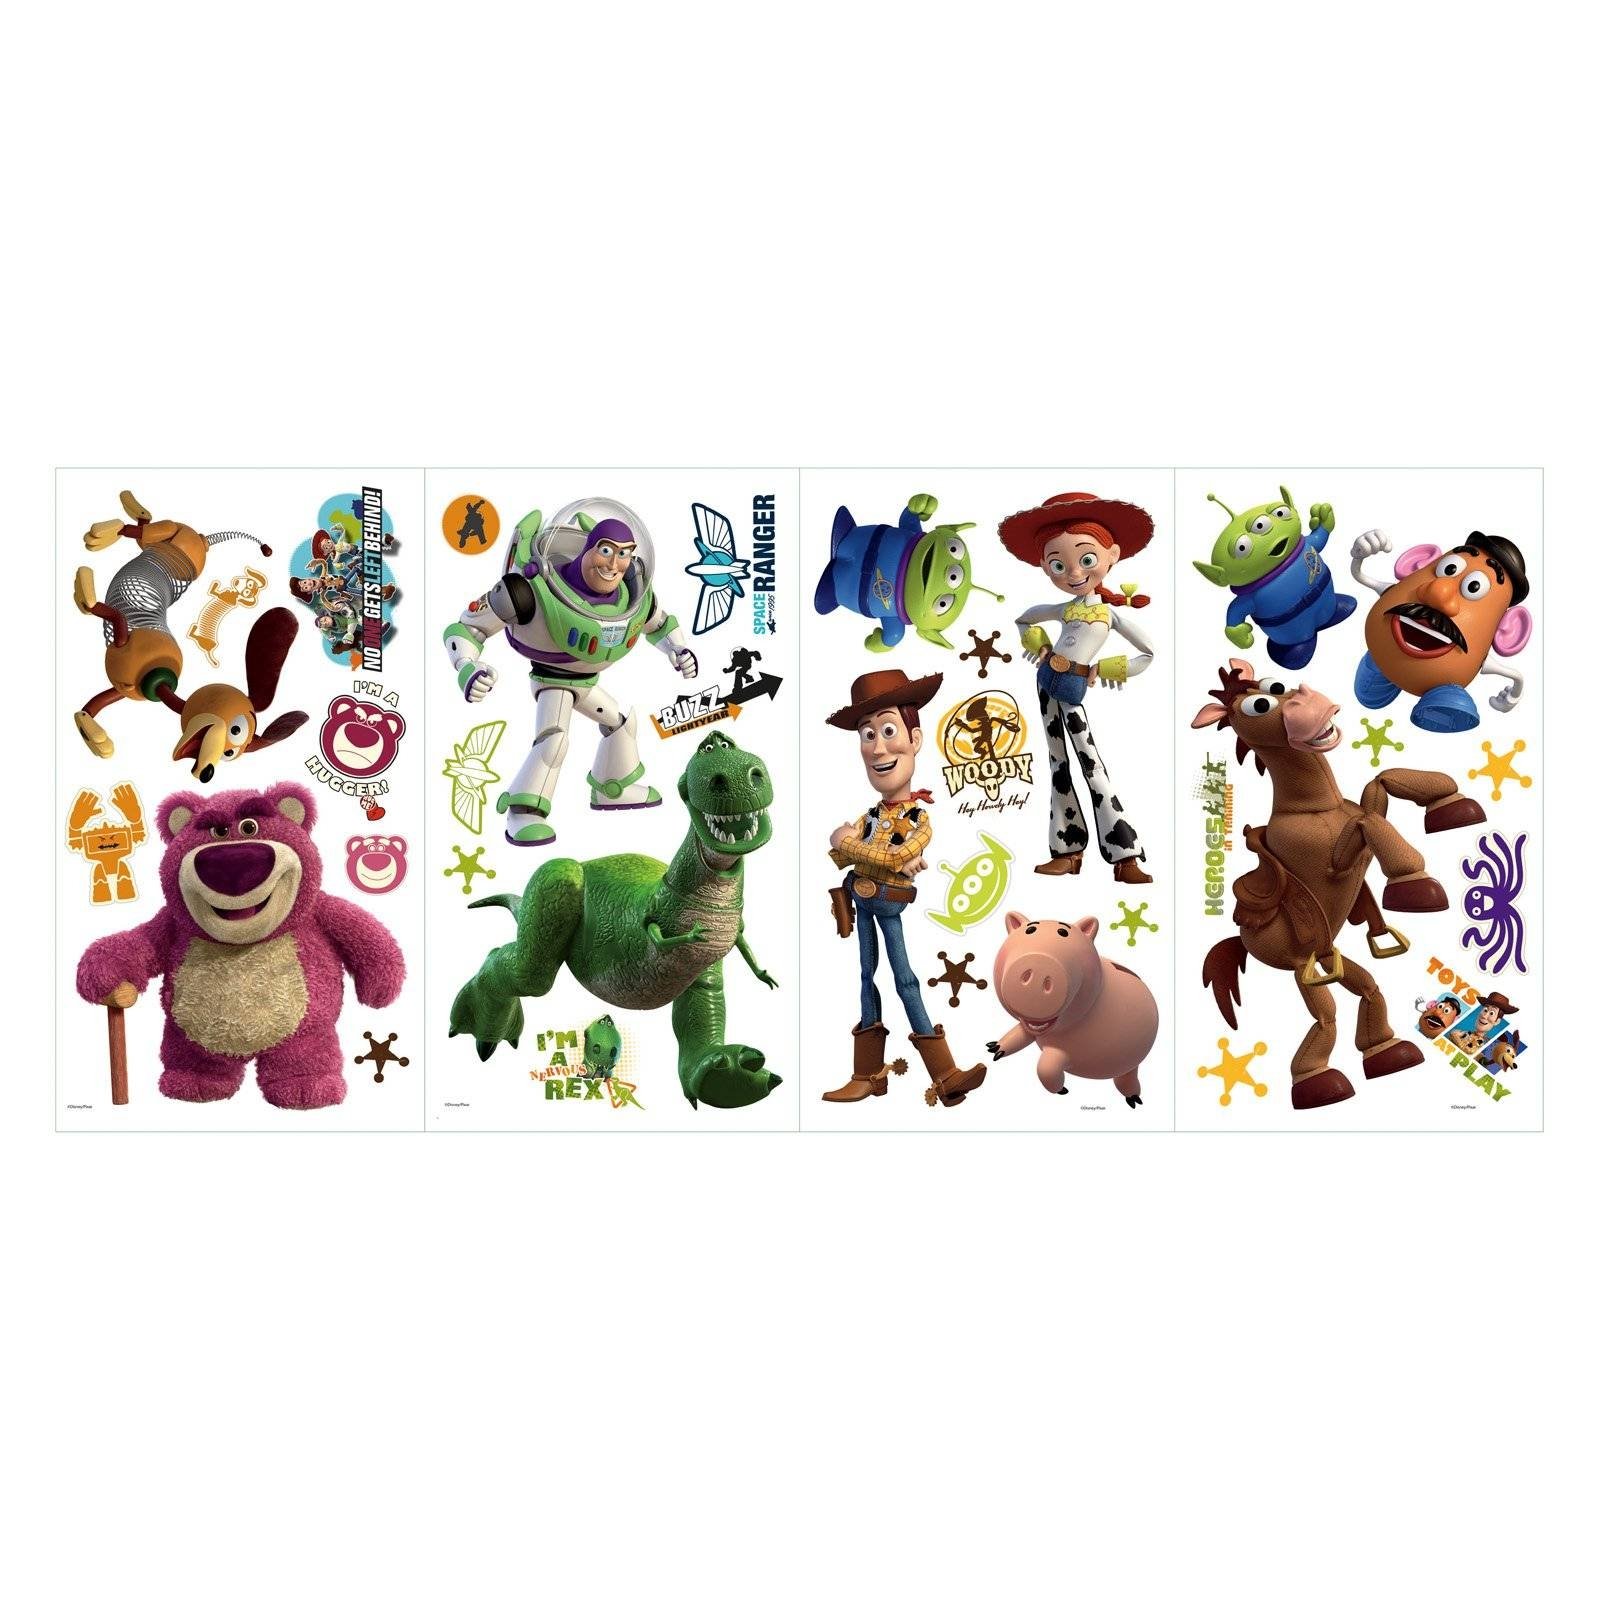 Roommates Disney Pixar Toy Story 3 Peel & Stick Wall Decals – Glow With Regard To Most Up To Date Toy Story Wall Stickers (View 12 of 25)